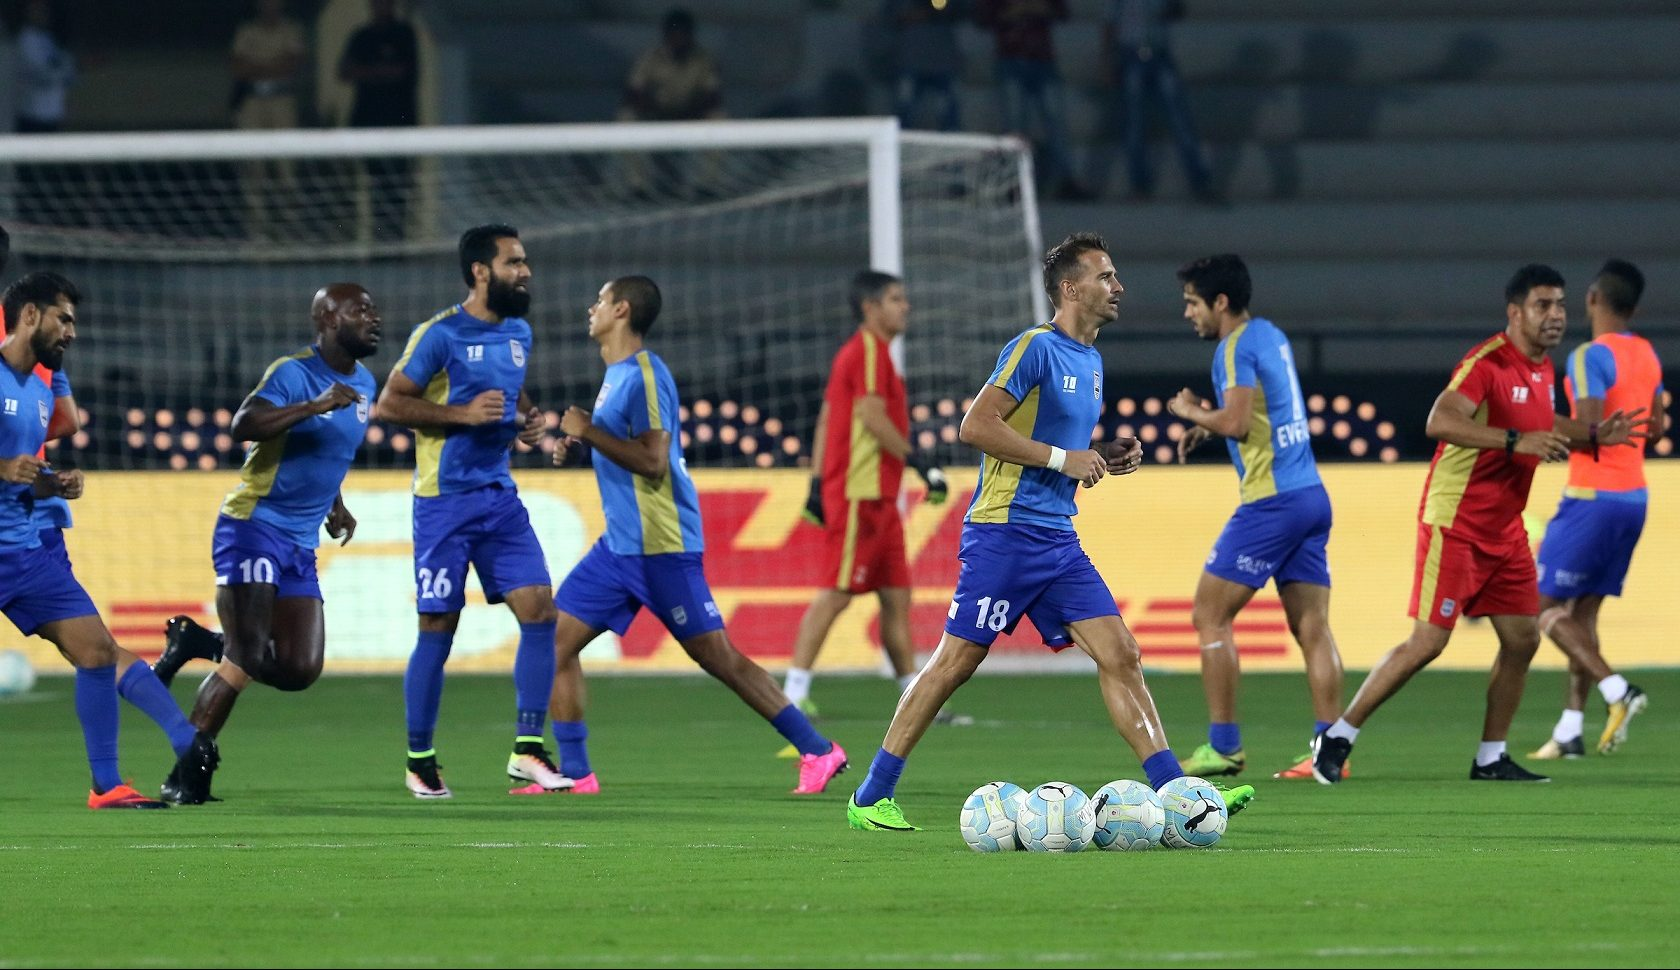 Mumbai City FC players warm up before the start of the match 27 of the Hero Indian Super League Struggling